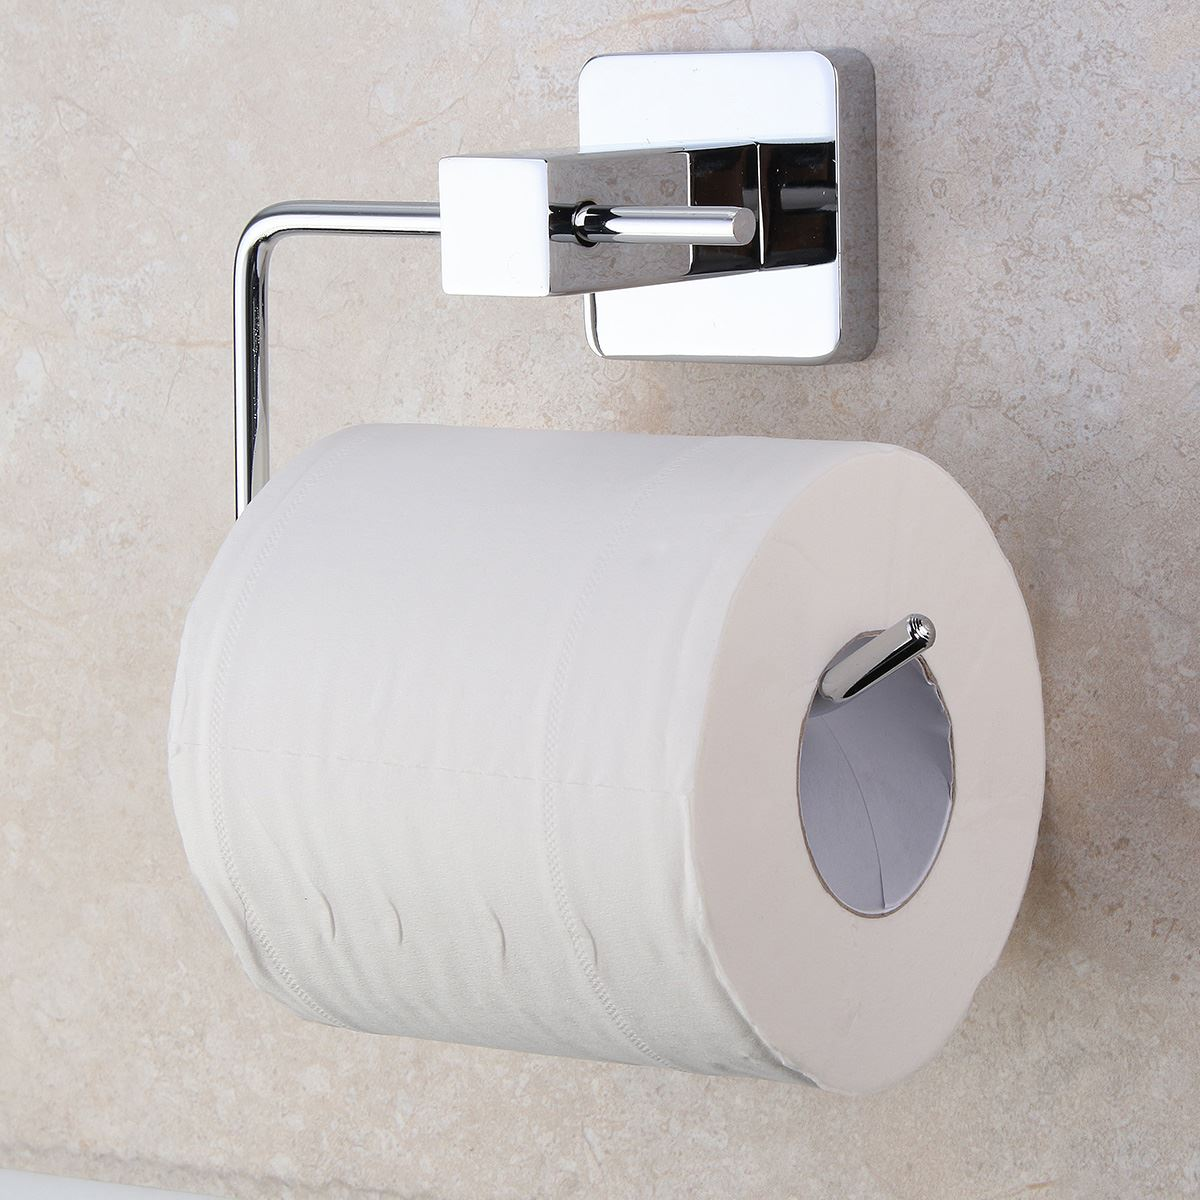 online get cheap toilet paper stand aliexpresscom  alibaba group - bathroom chrome plated toilet paper roll tissue holder bar wall mountedstorage shelf stand towel hook